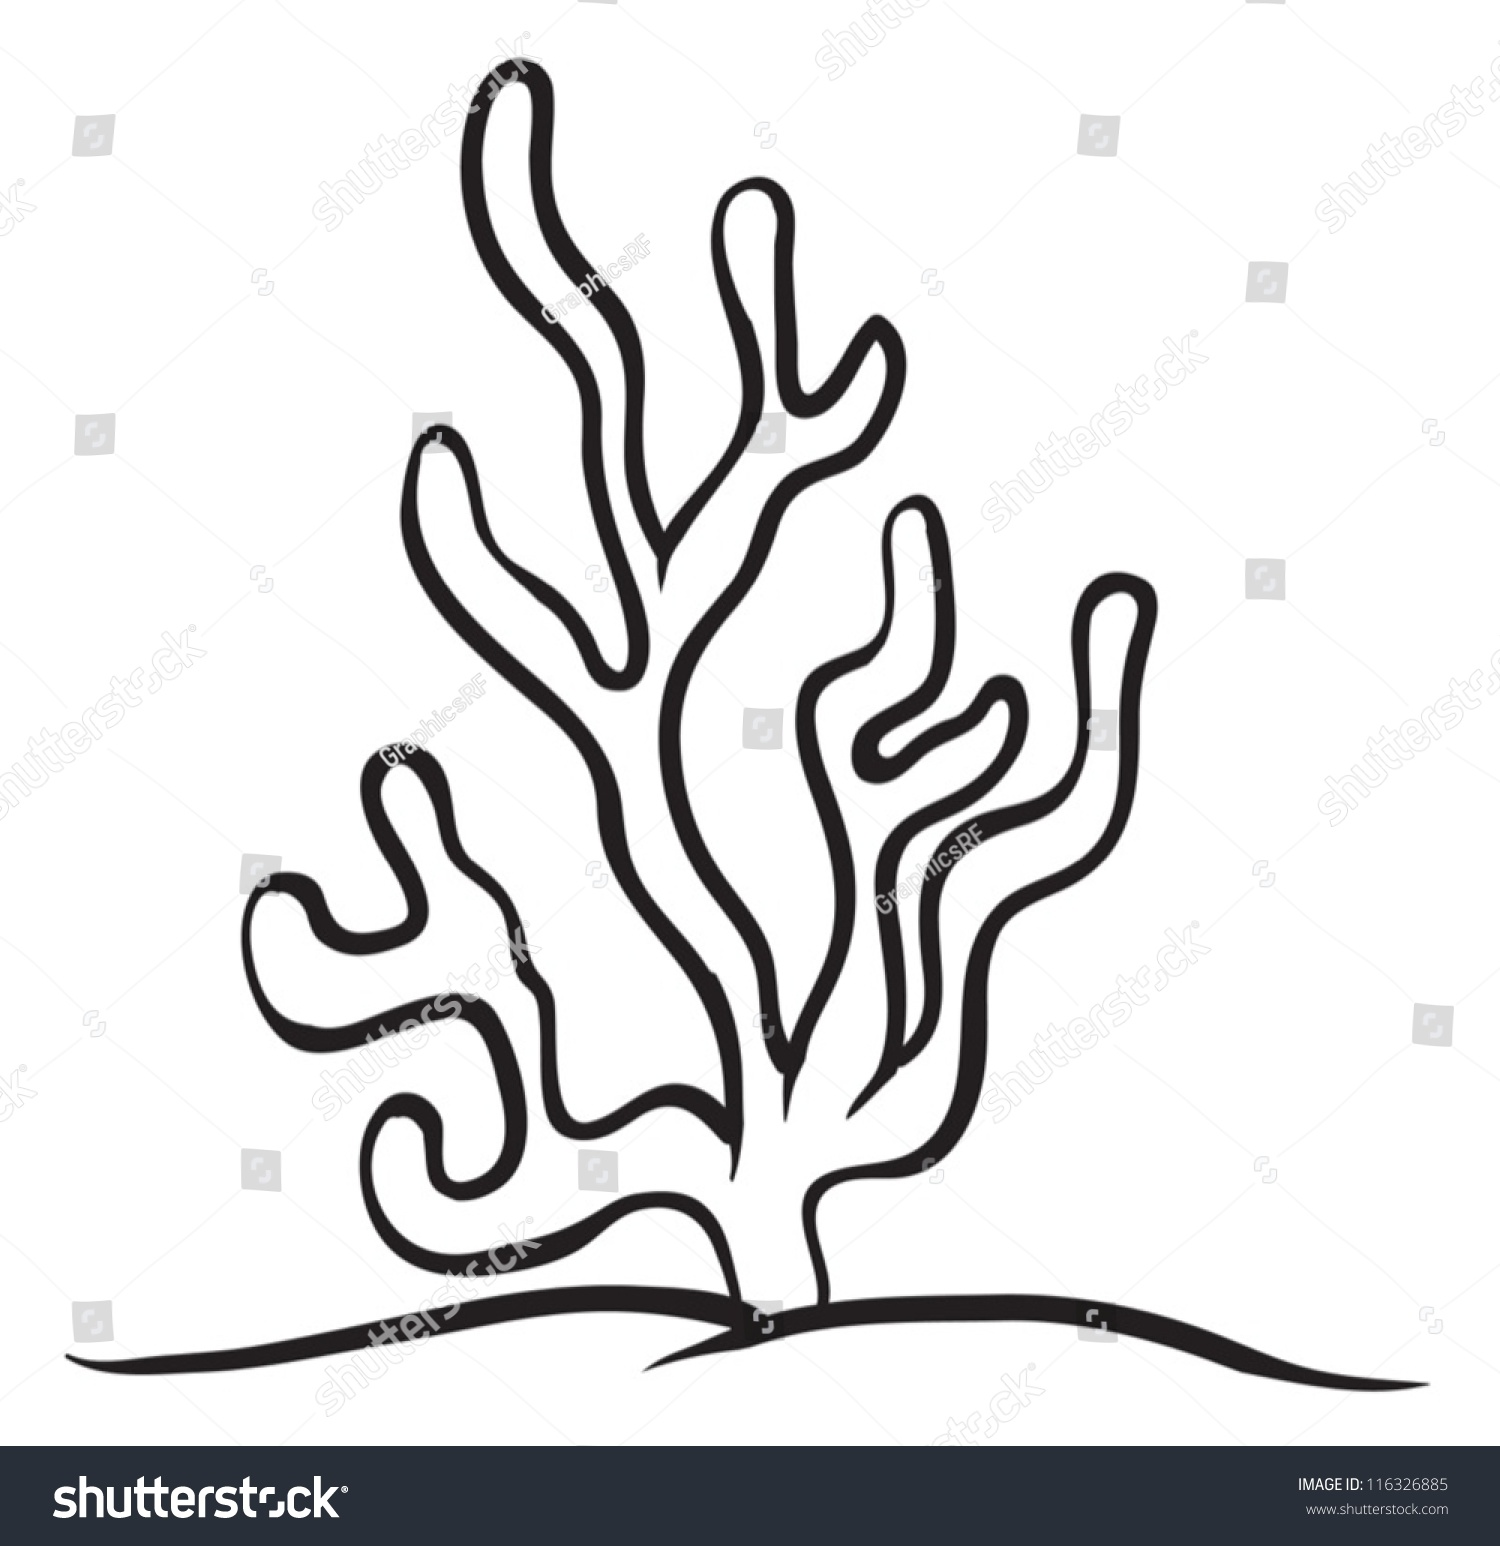 Stock Vector Illustration Of A Under Water Plant On A White Background